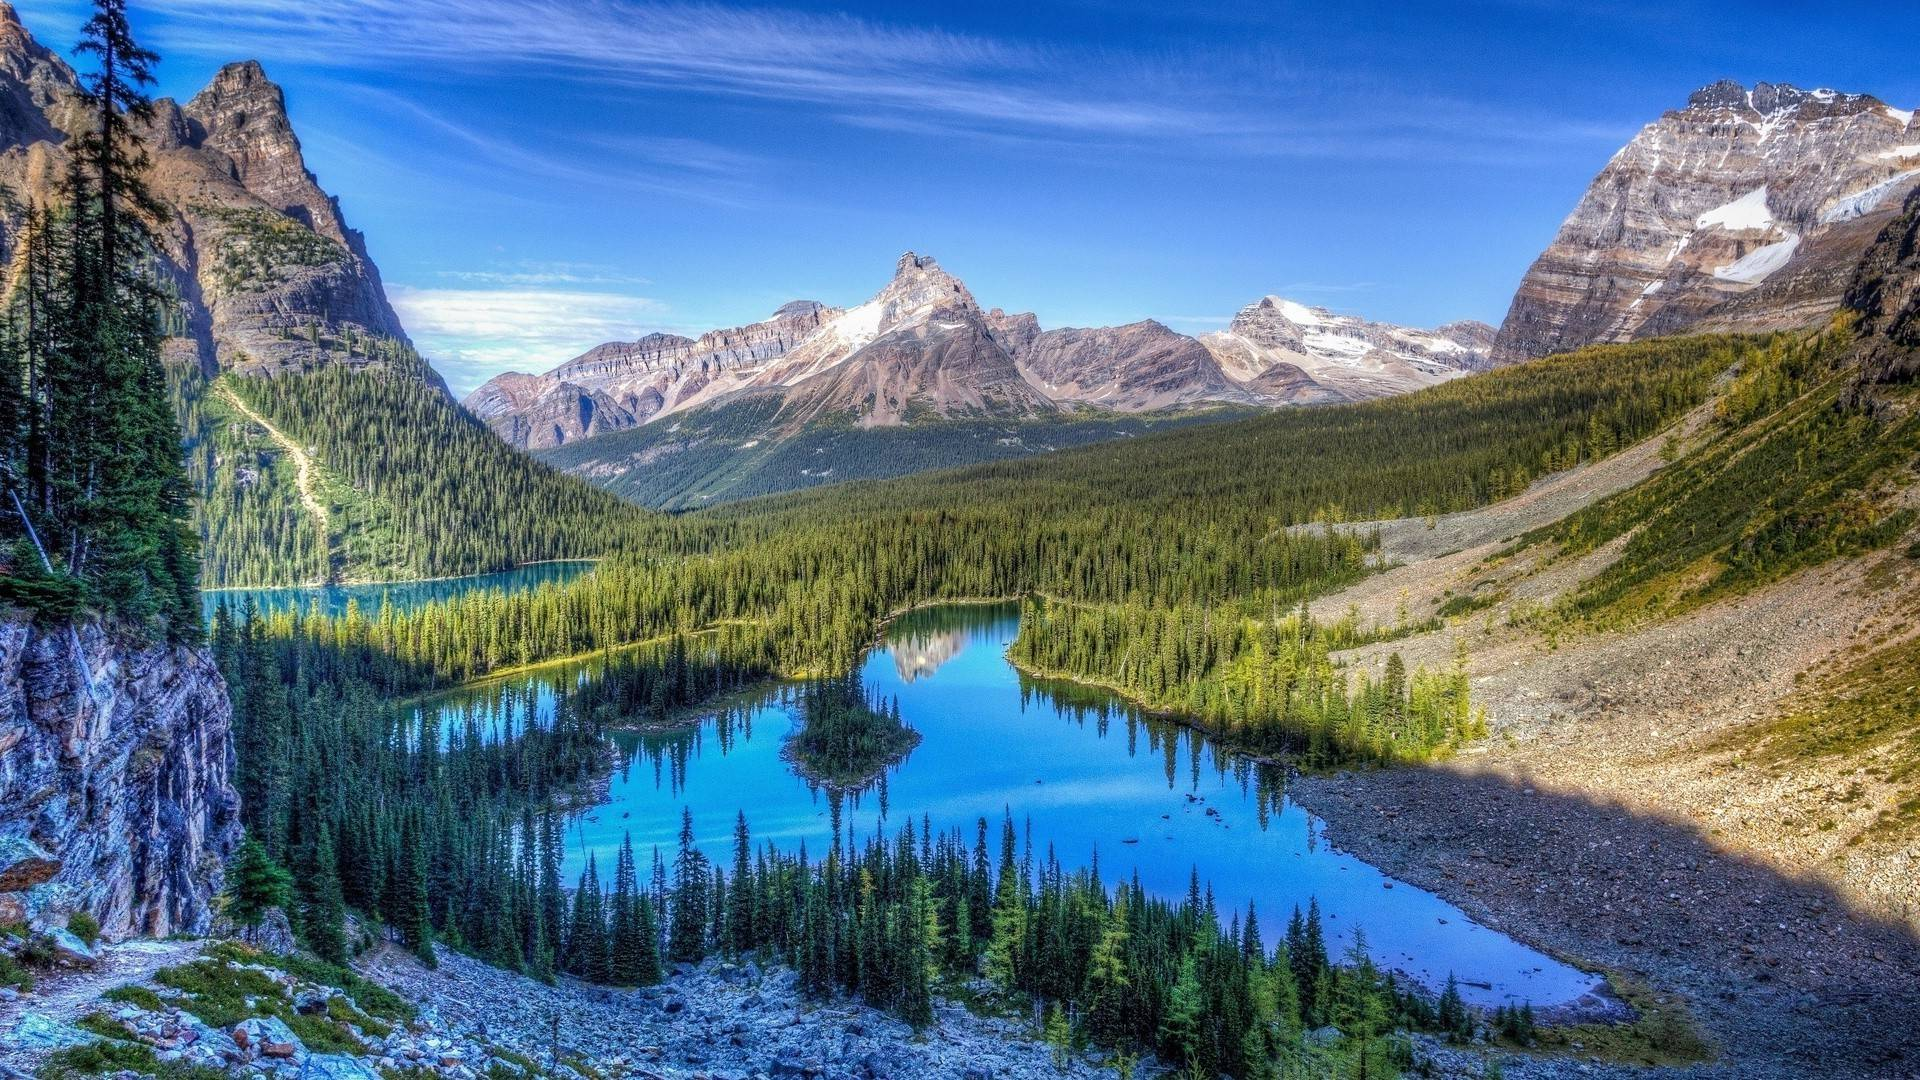 Rocky Mountains Wallpapers - Top Free